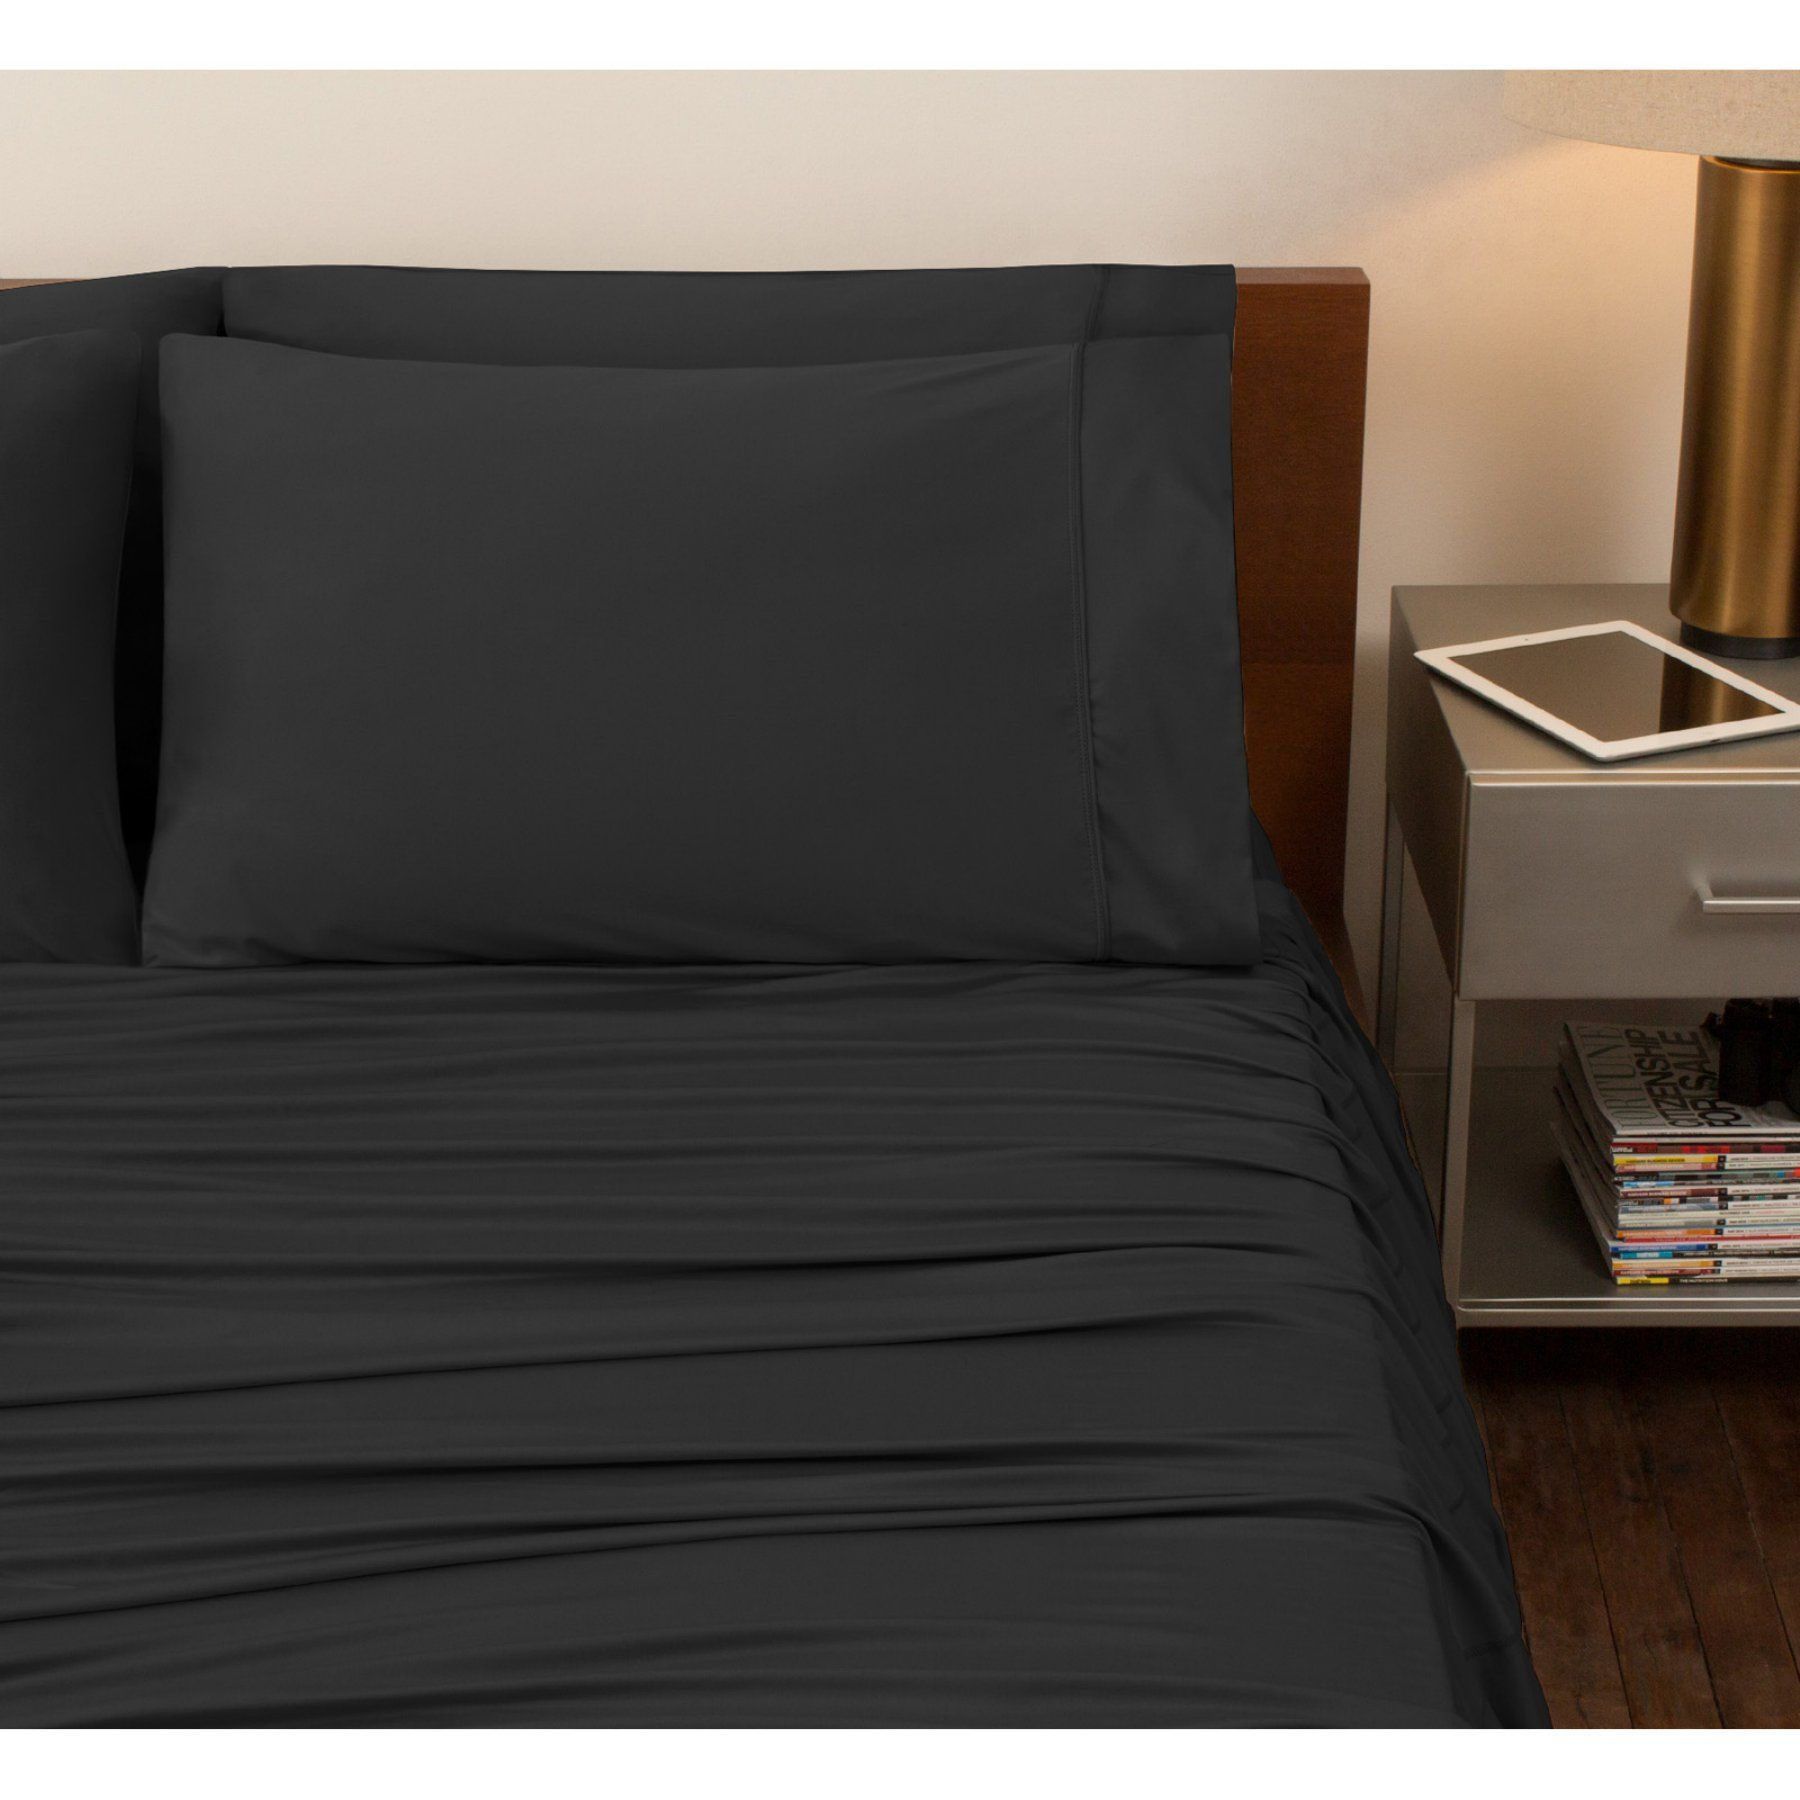 Original Performance Collection Sheet Set By Sheex Reg